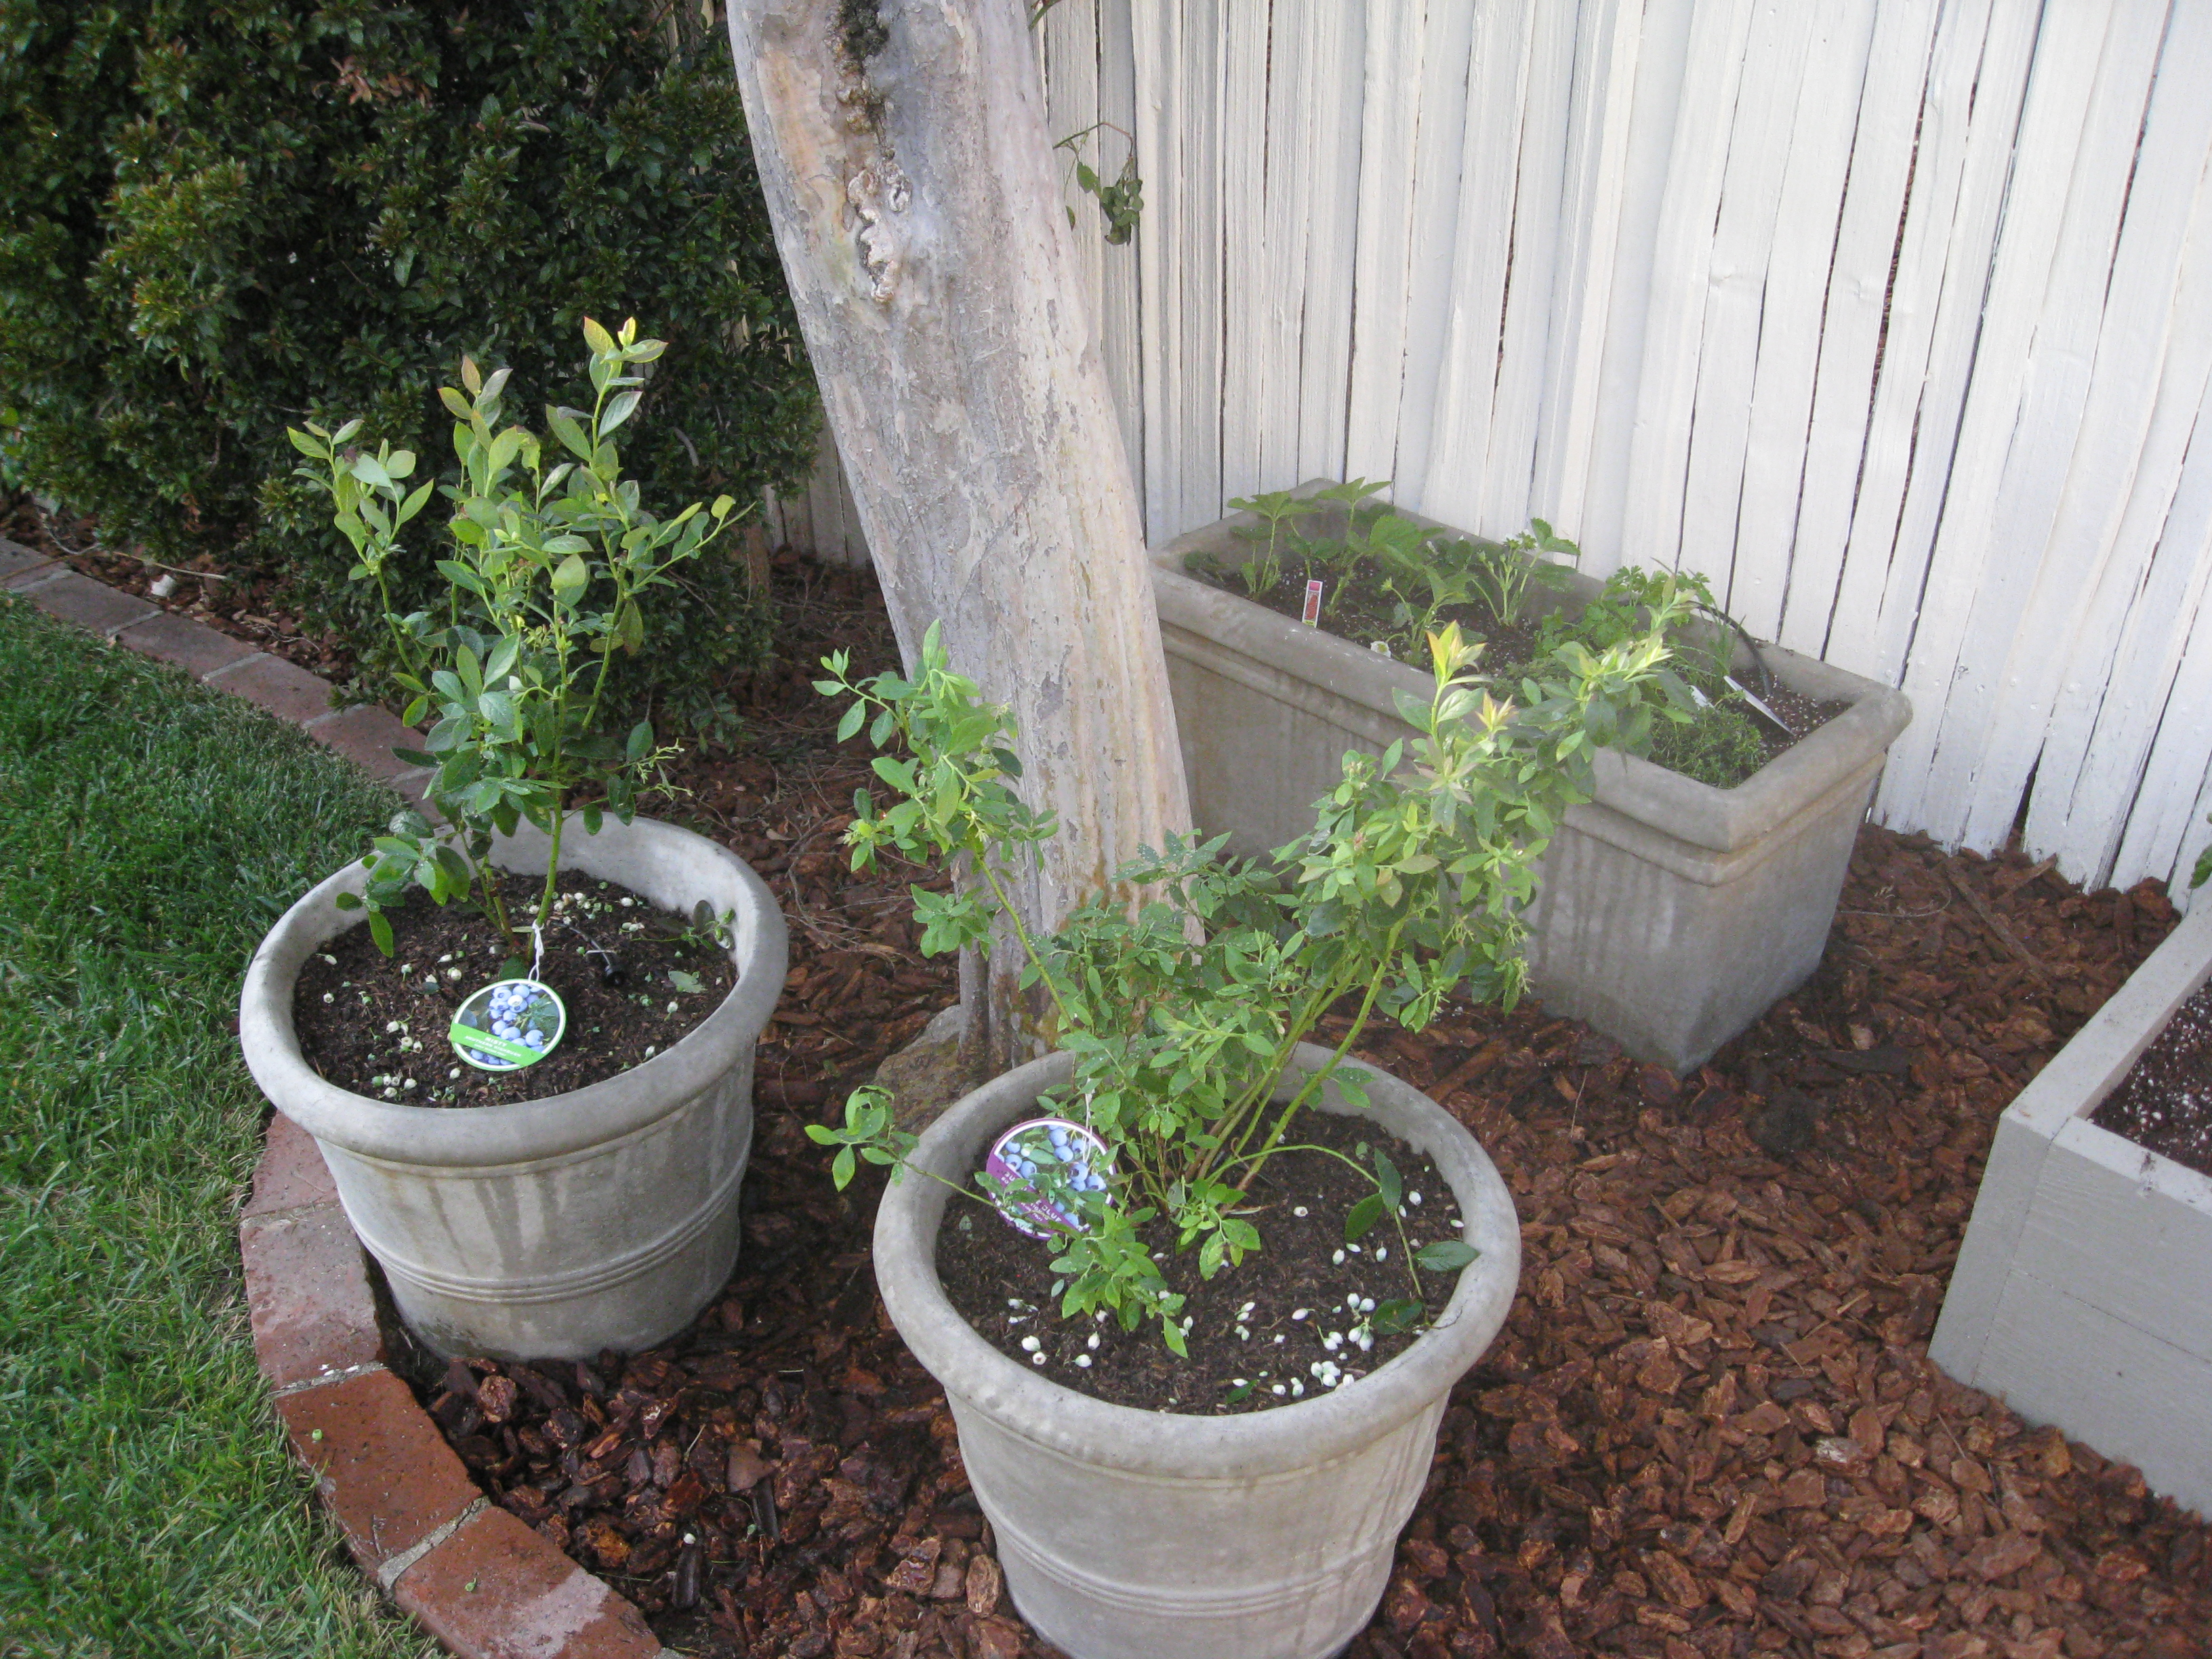 Blueberries (dwarf varieties) with strawberries and herbs around a tree.